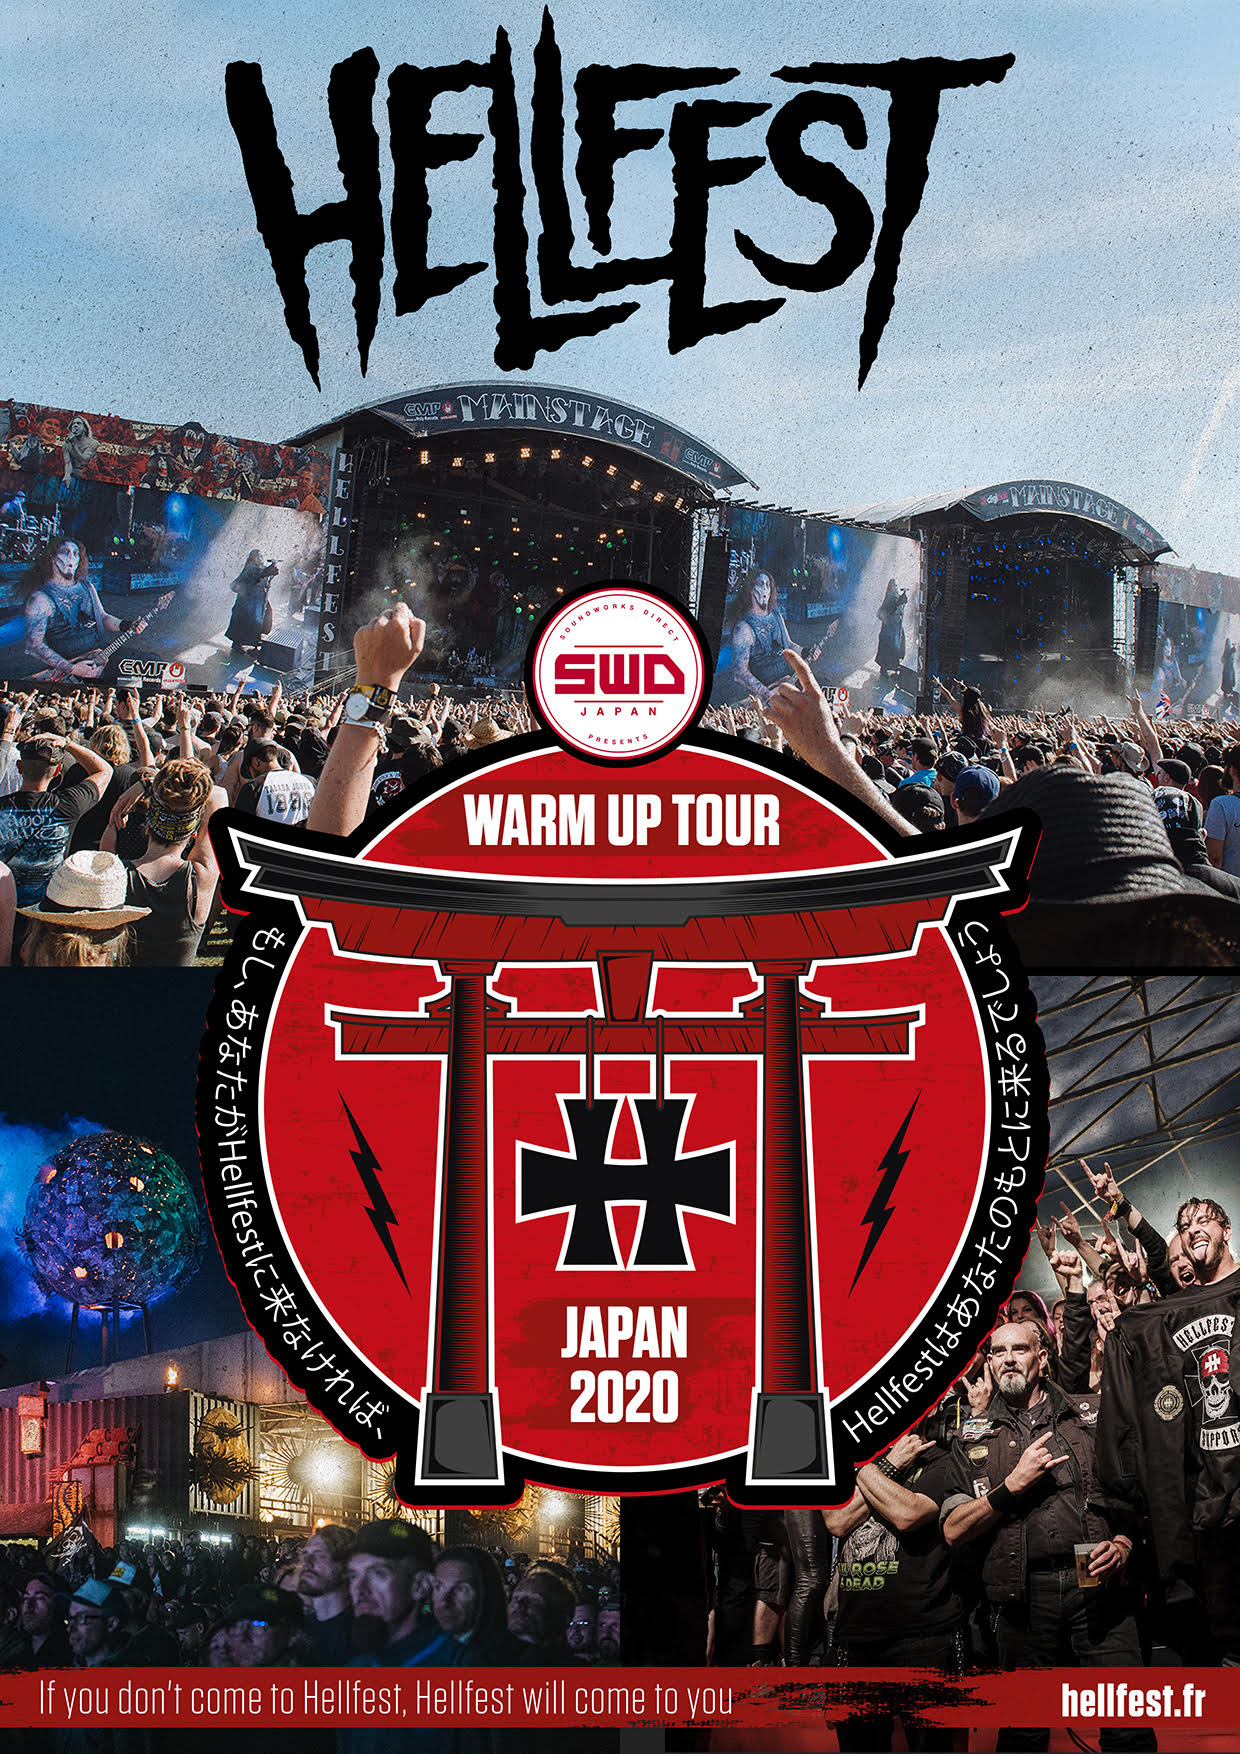 Hellfest - Warm Up Tour 2020 - xx/xx/2020 - TBA - Japan